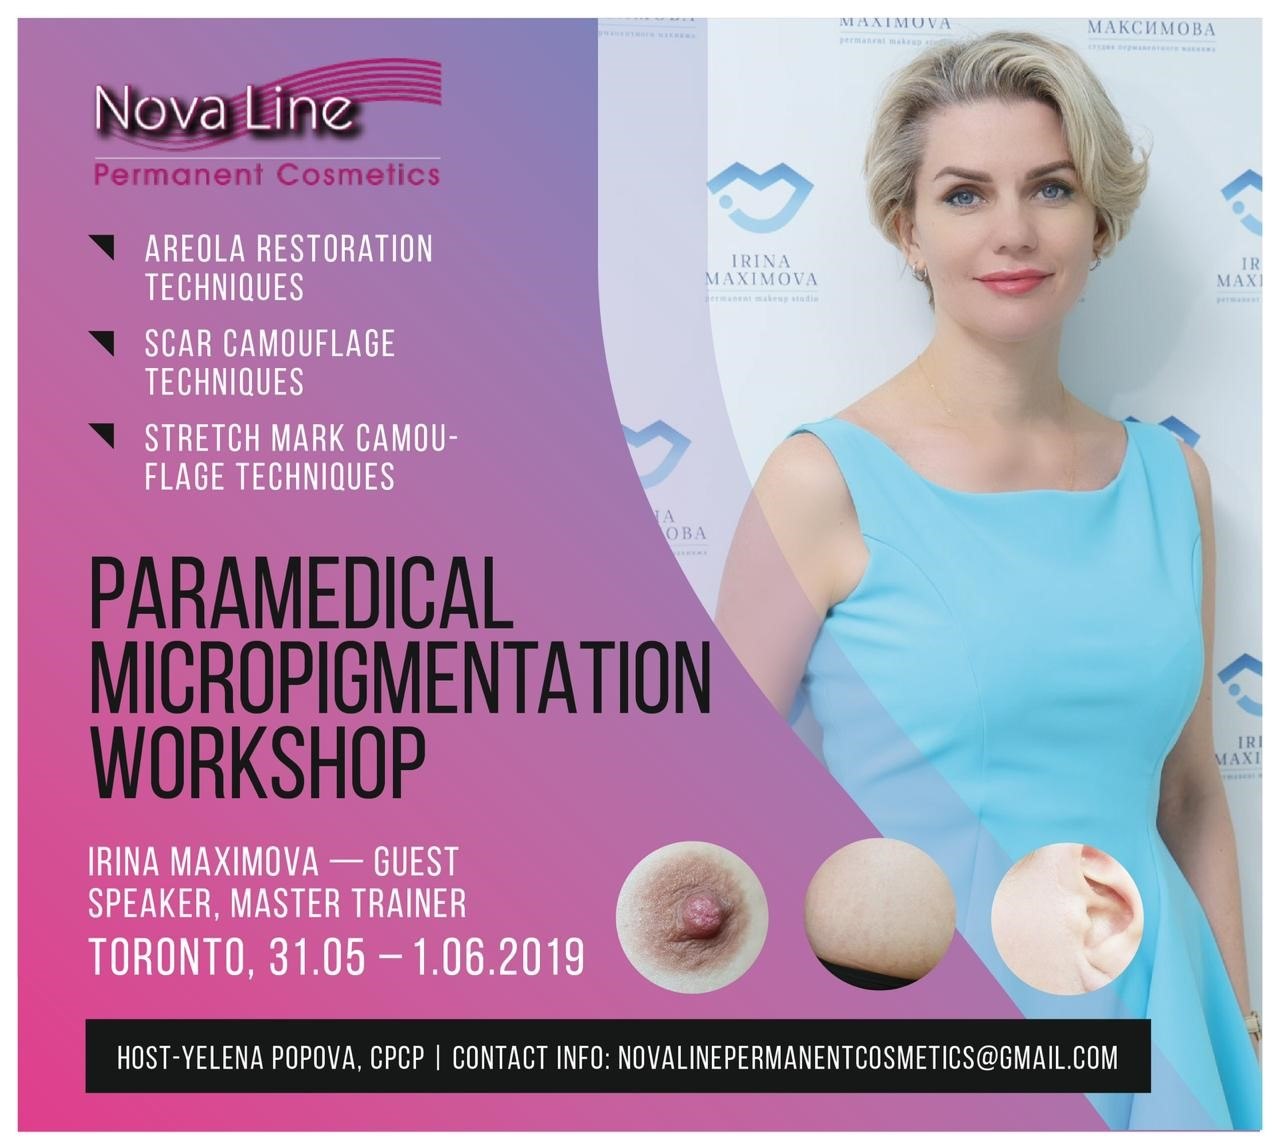 Paramedical Micro pigmentation Workshop